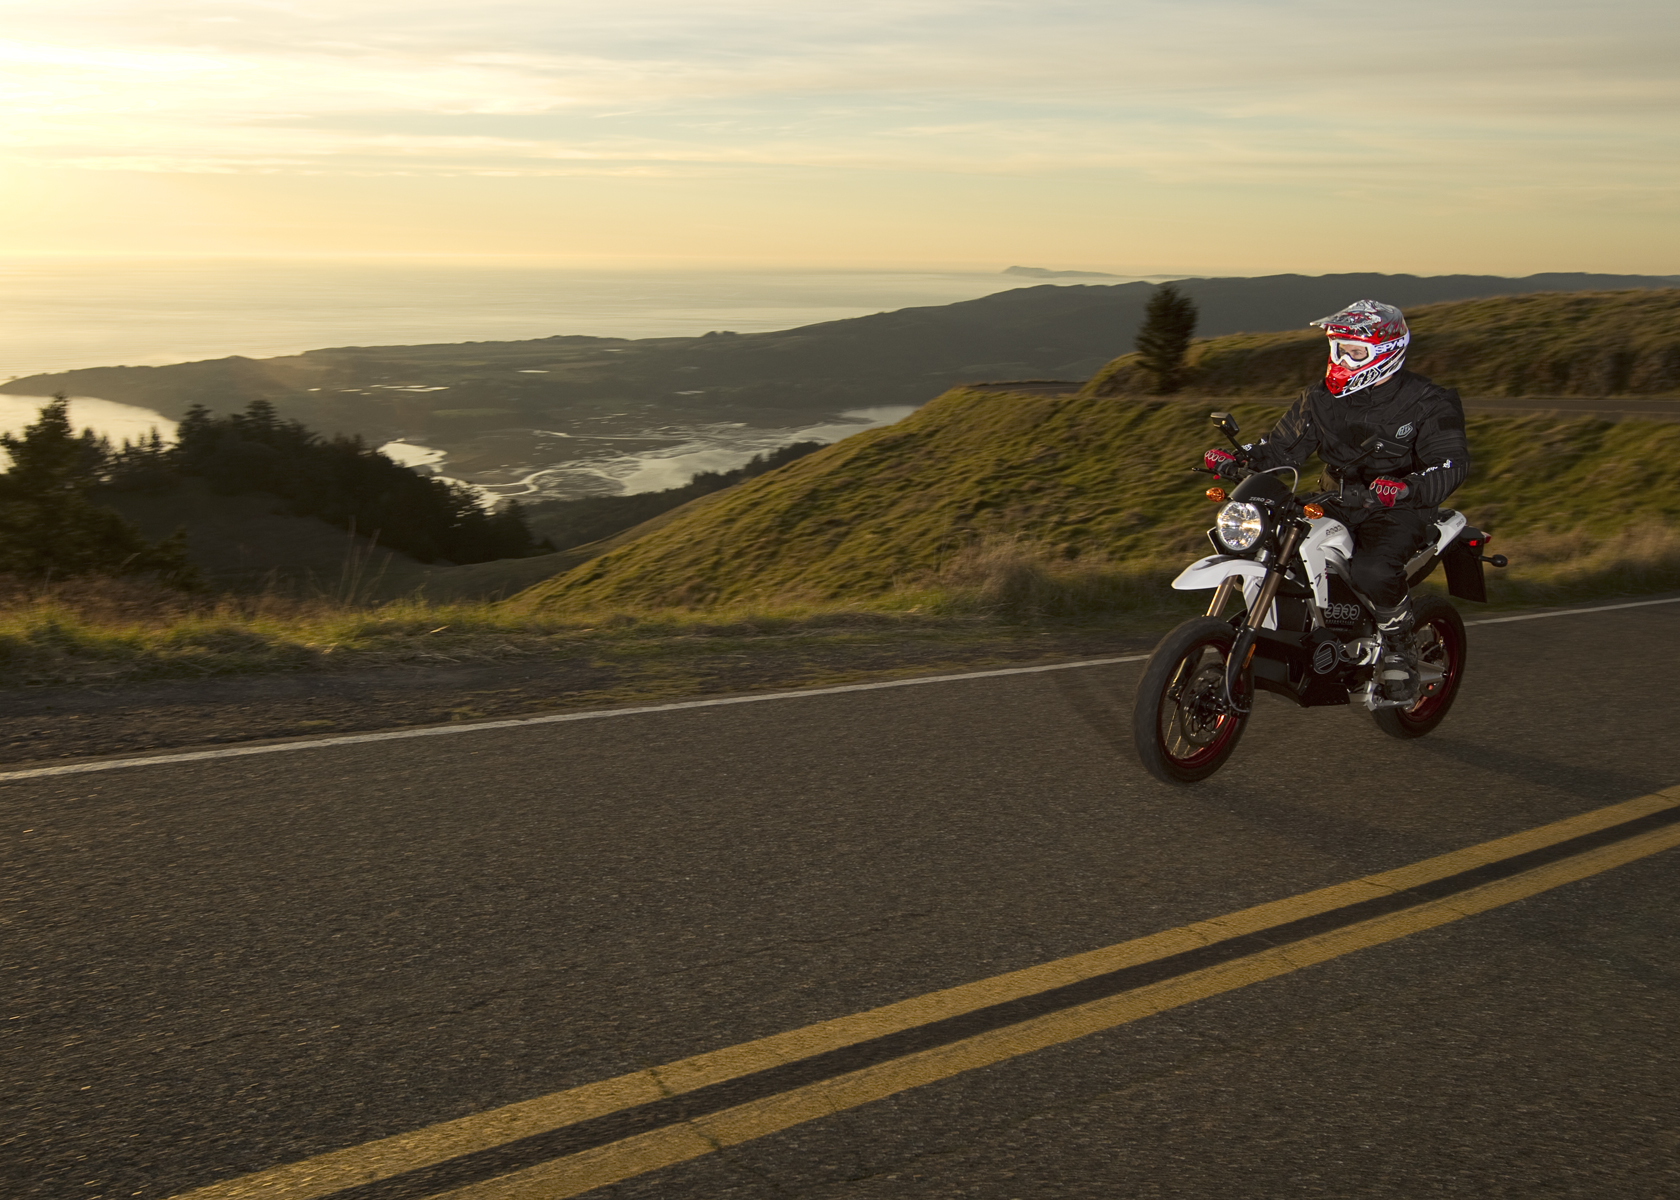 '.2011 Zero DS Electric Motorcycle: Cruising, Pacific Ocean View.'